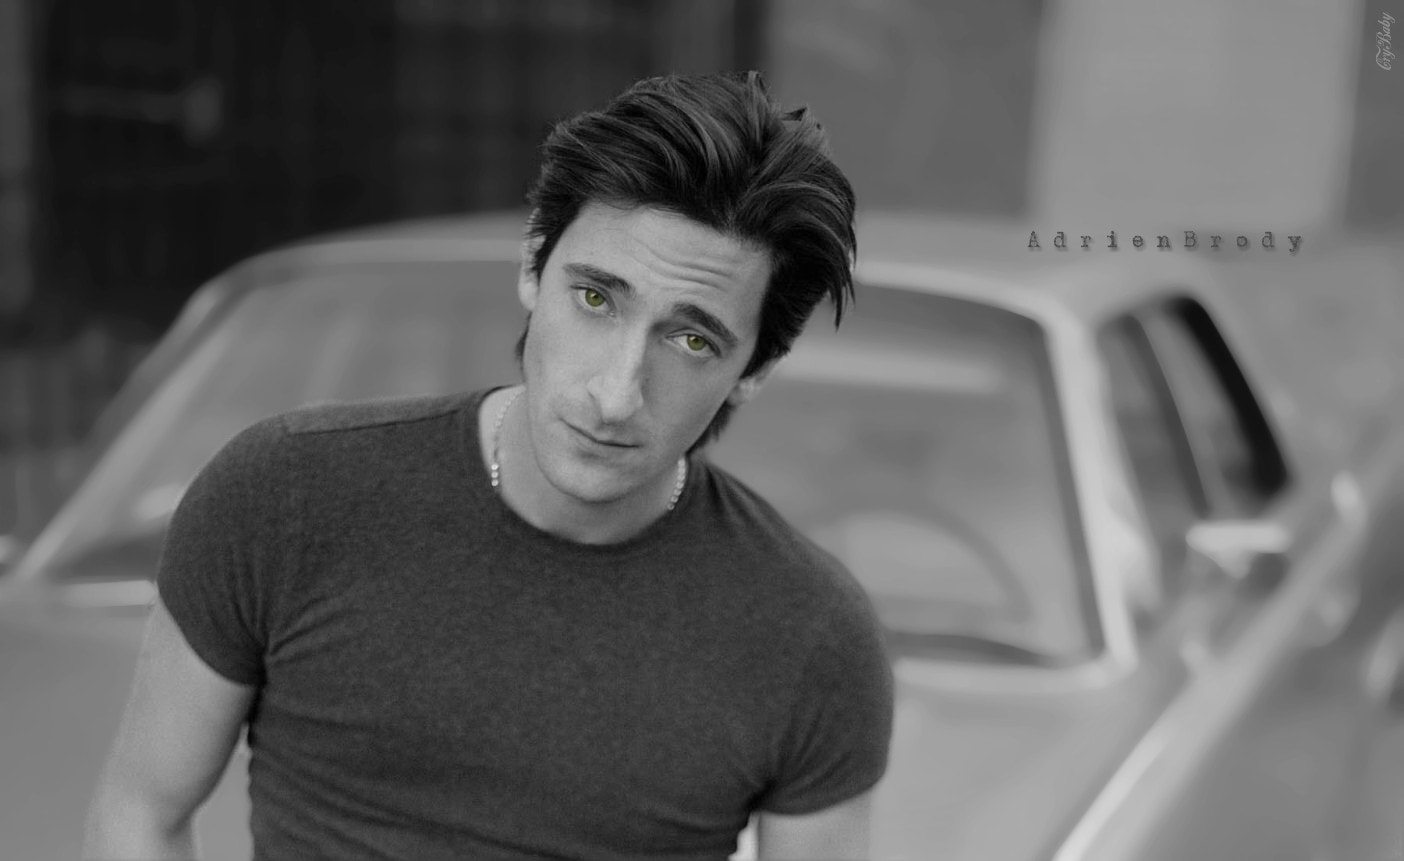 Adrien Brody Background